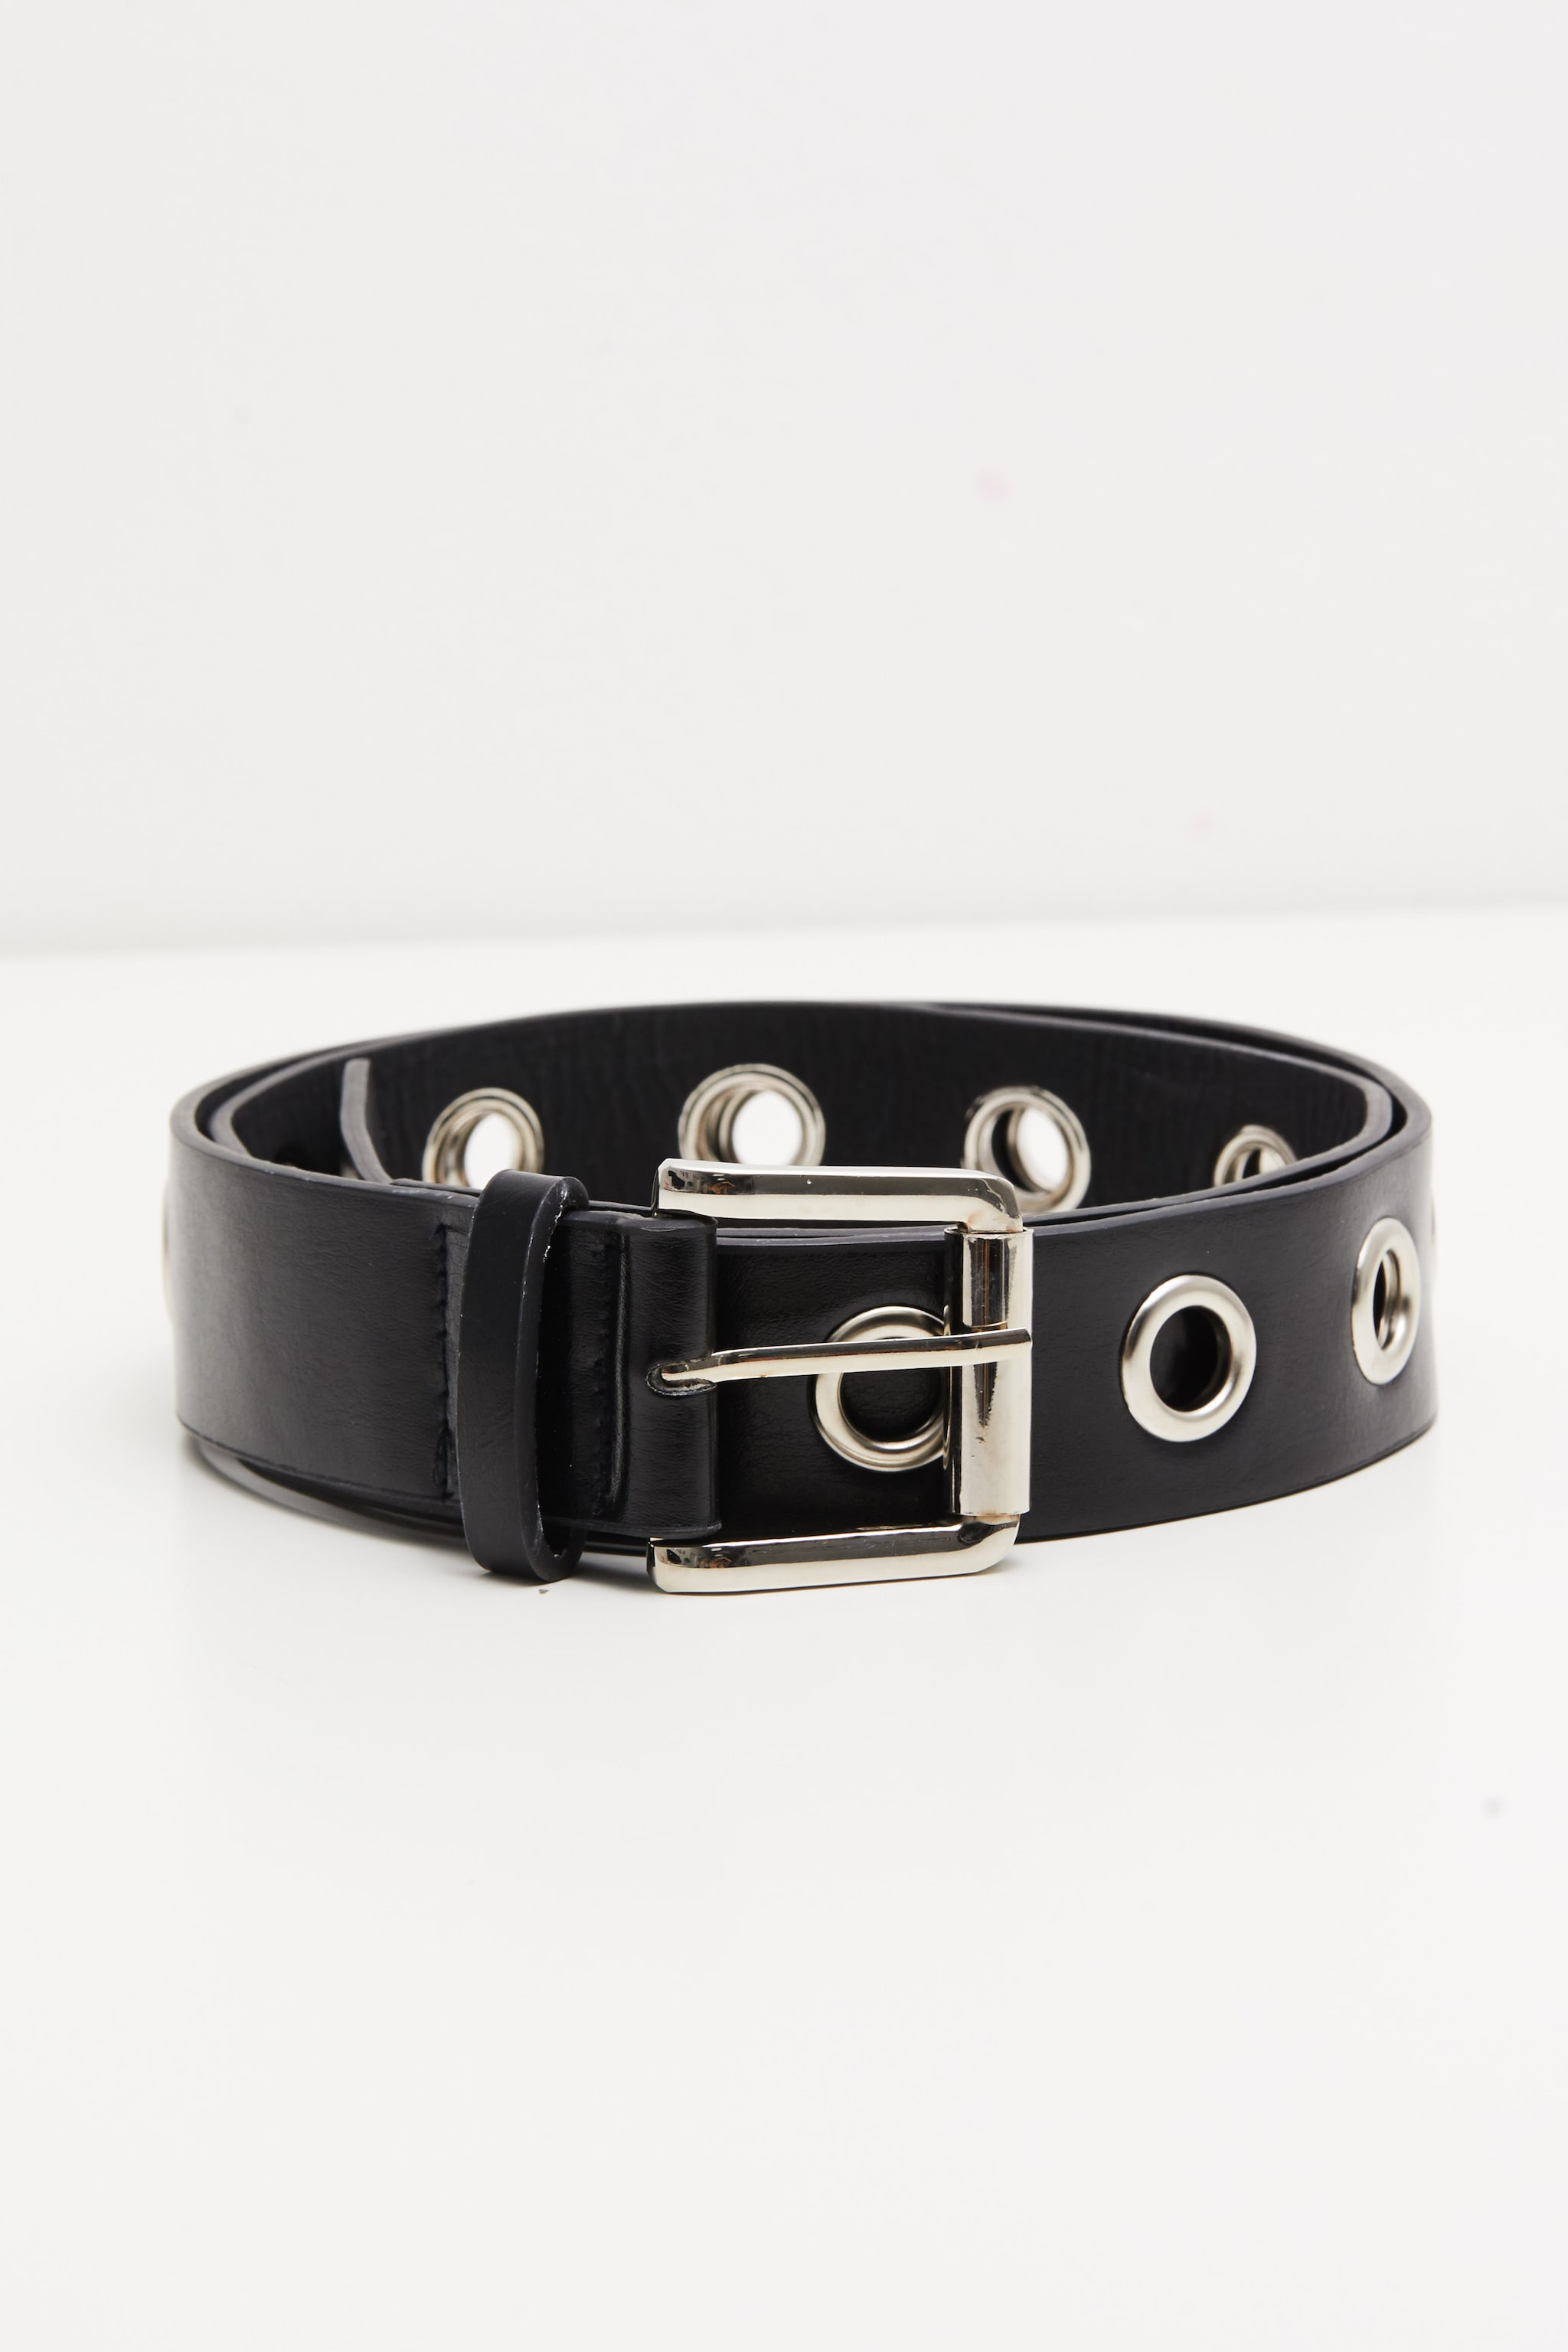 Plus Black Eyelet Belt 2